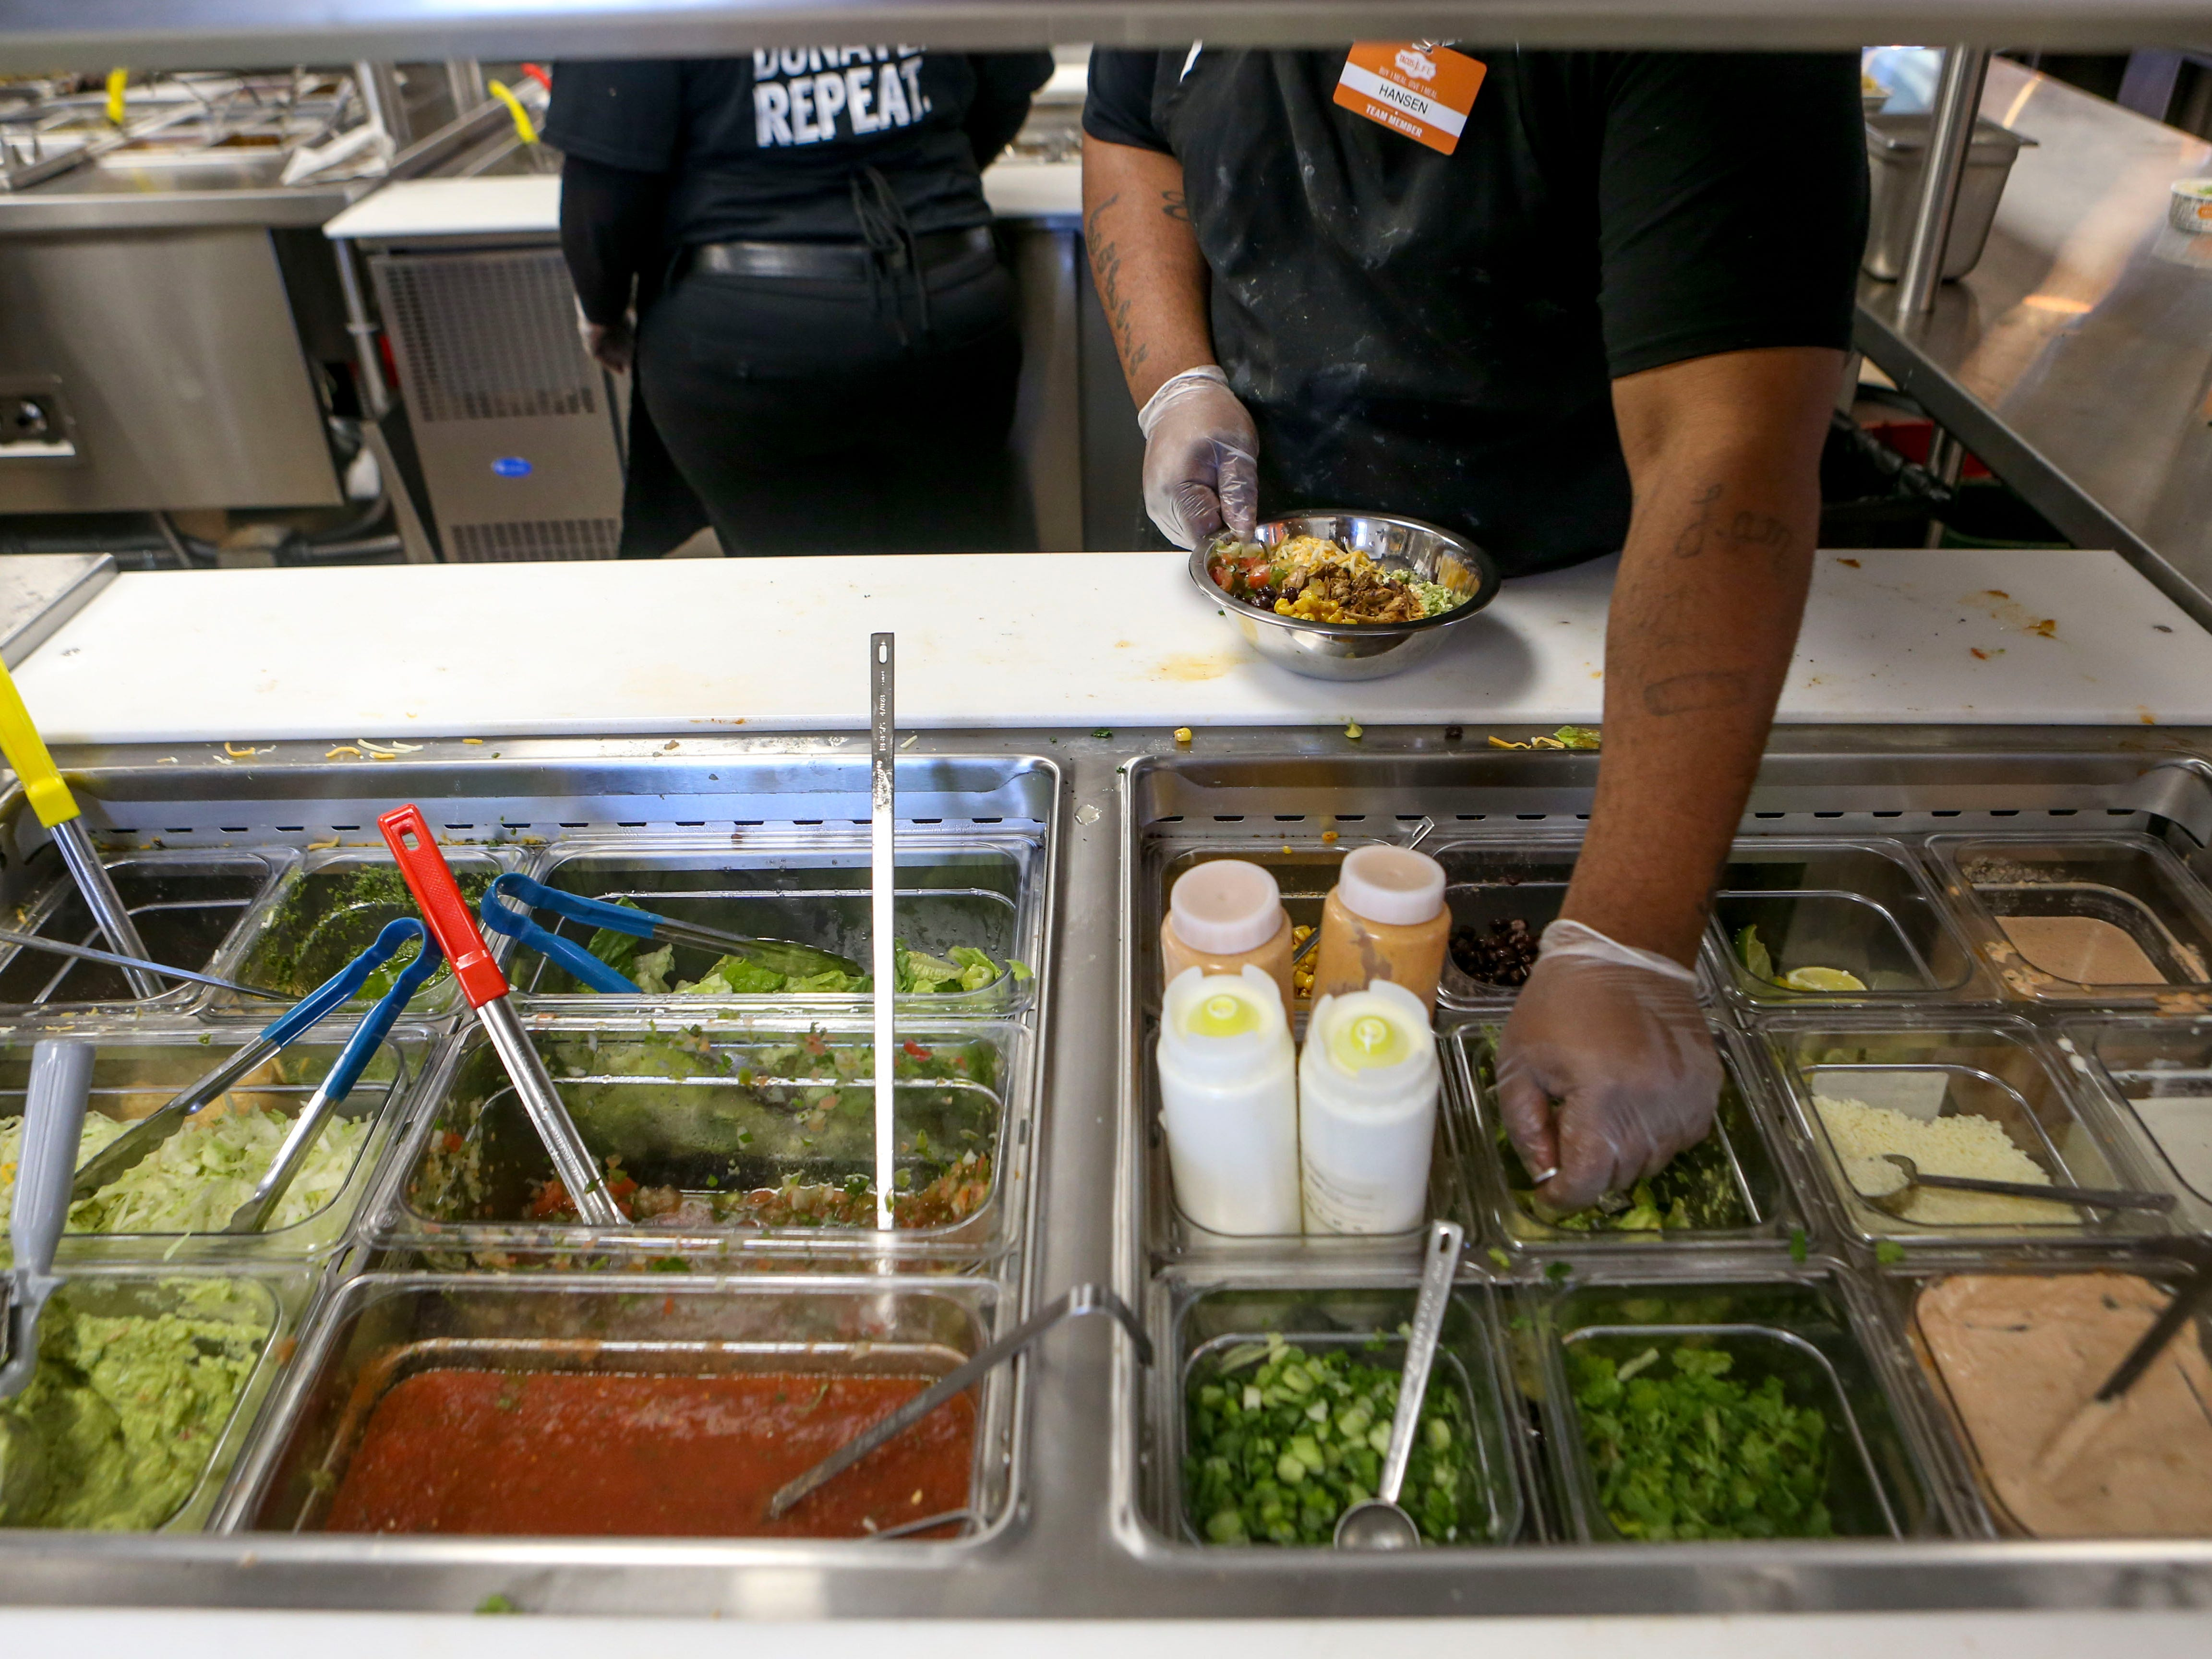 Employees reach out for ingredients to top on tacos during the soft opening at Tacos 4 Life, a new restaurant in Jackson, Tenn., on Monday, Oct. 29, 2018.